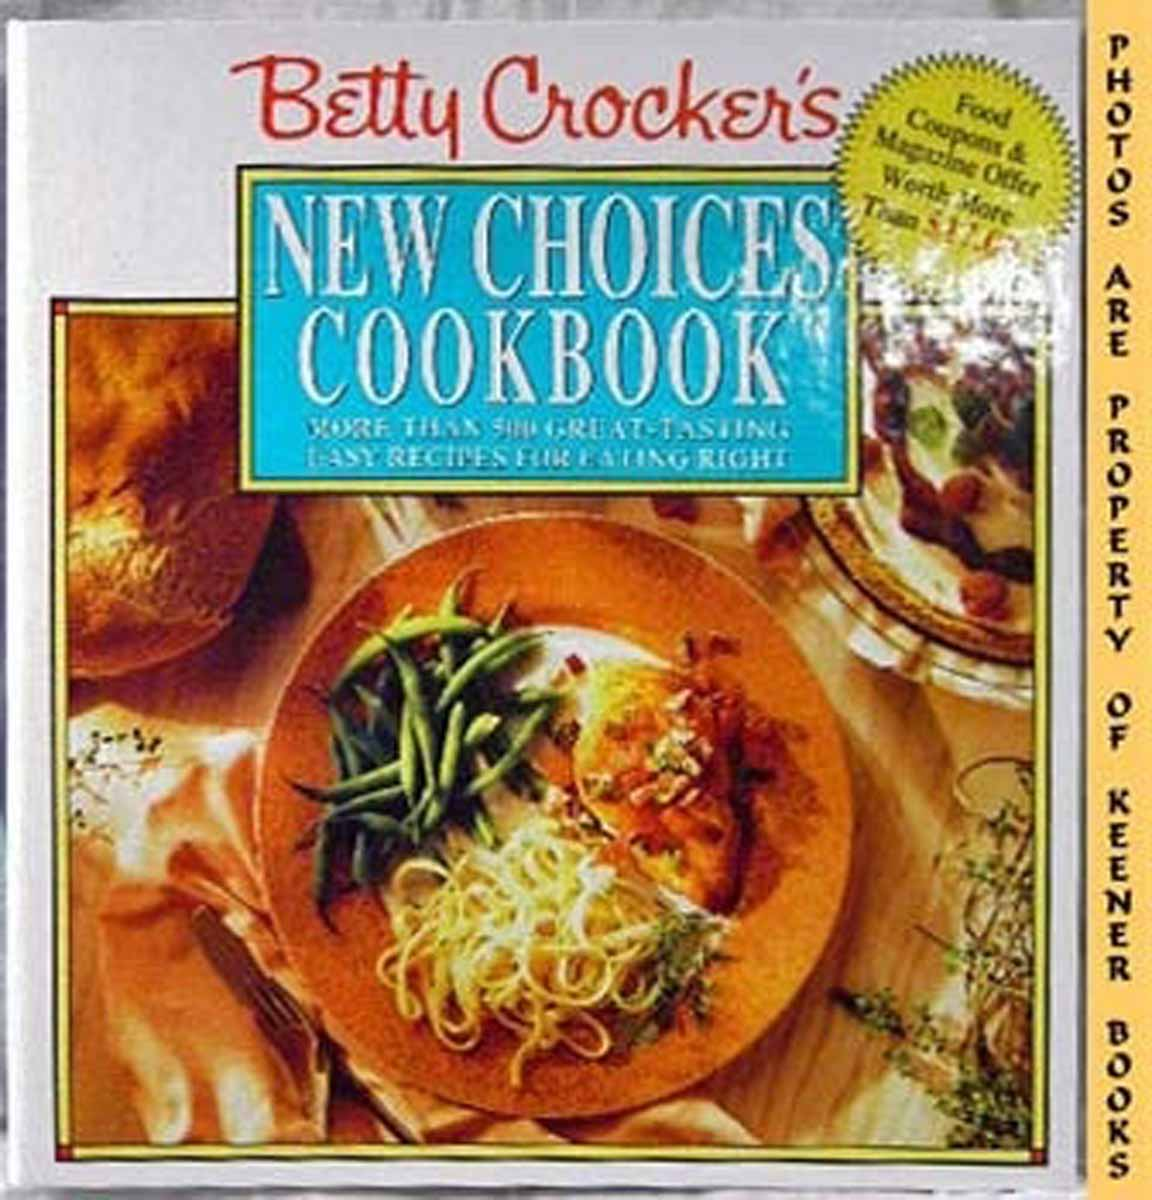 Image for Betty Crocker's New Choices Cookbook : More Than 500 Great - Tasting Easy Recipes For Eating Right -- Five - 5 - Ring Binder